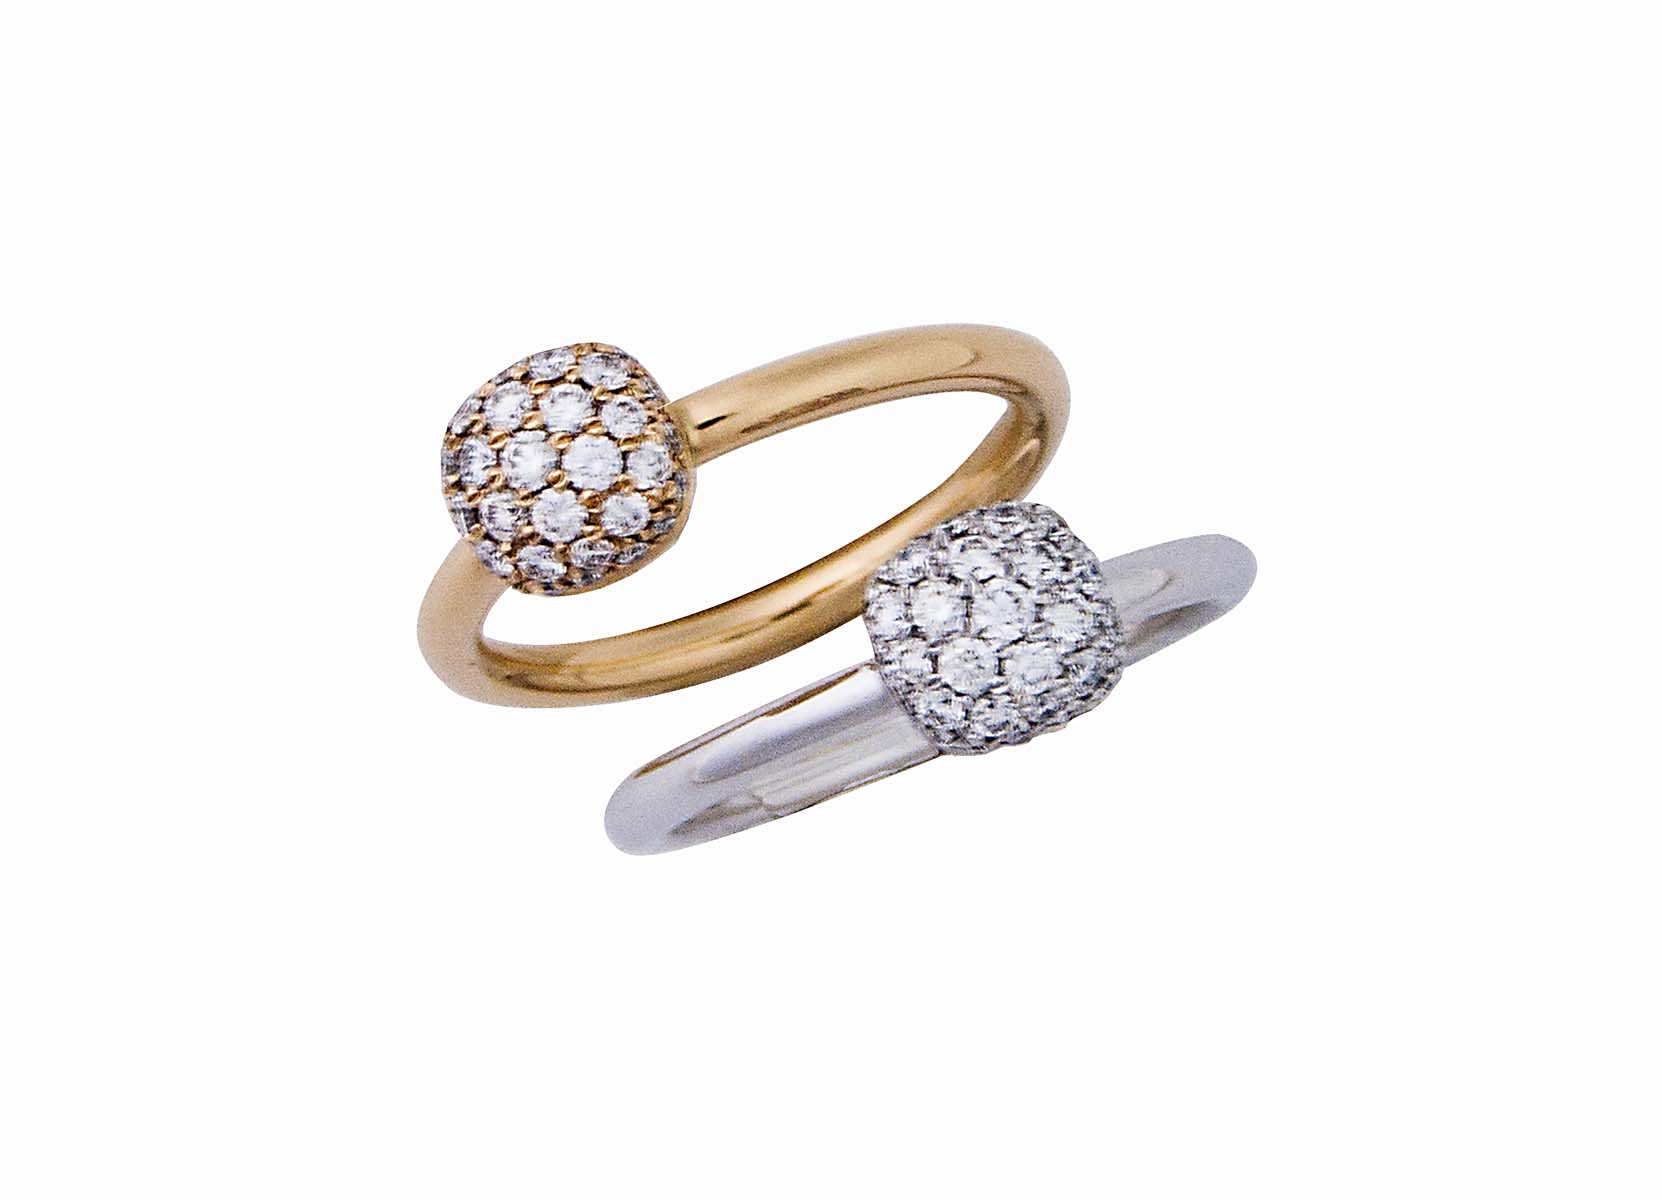 One 18K RG ring with 0.35cts. one 18k wg ring with 0.35cts